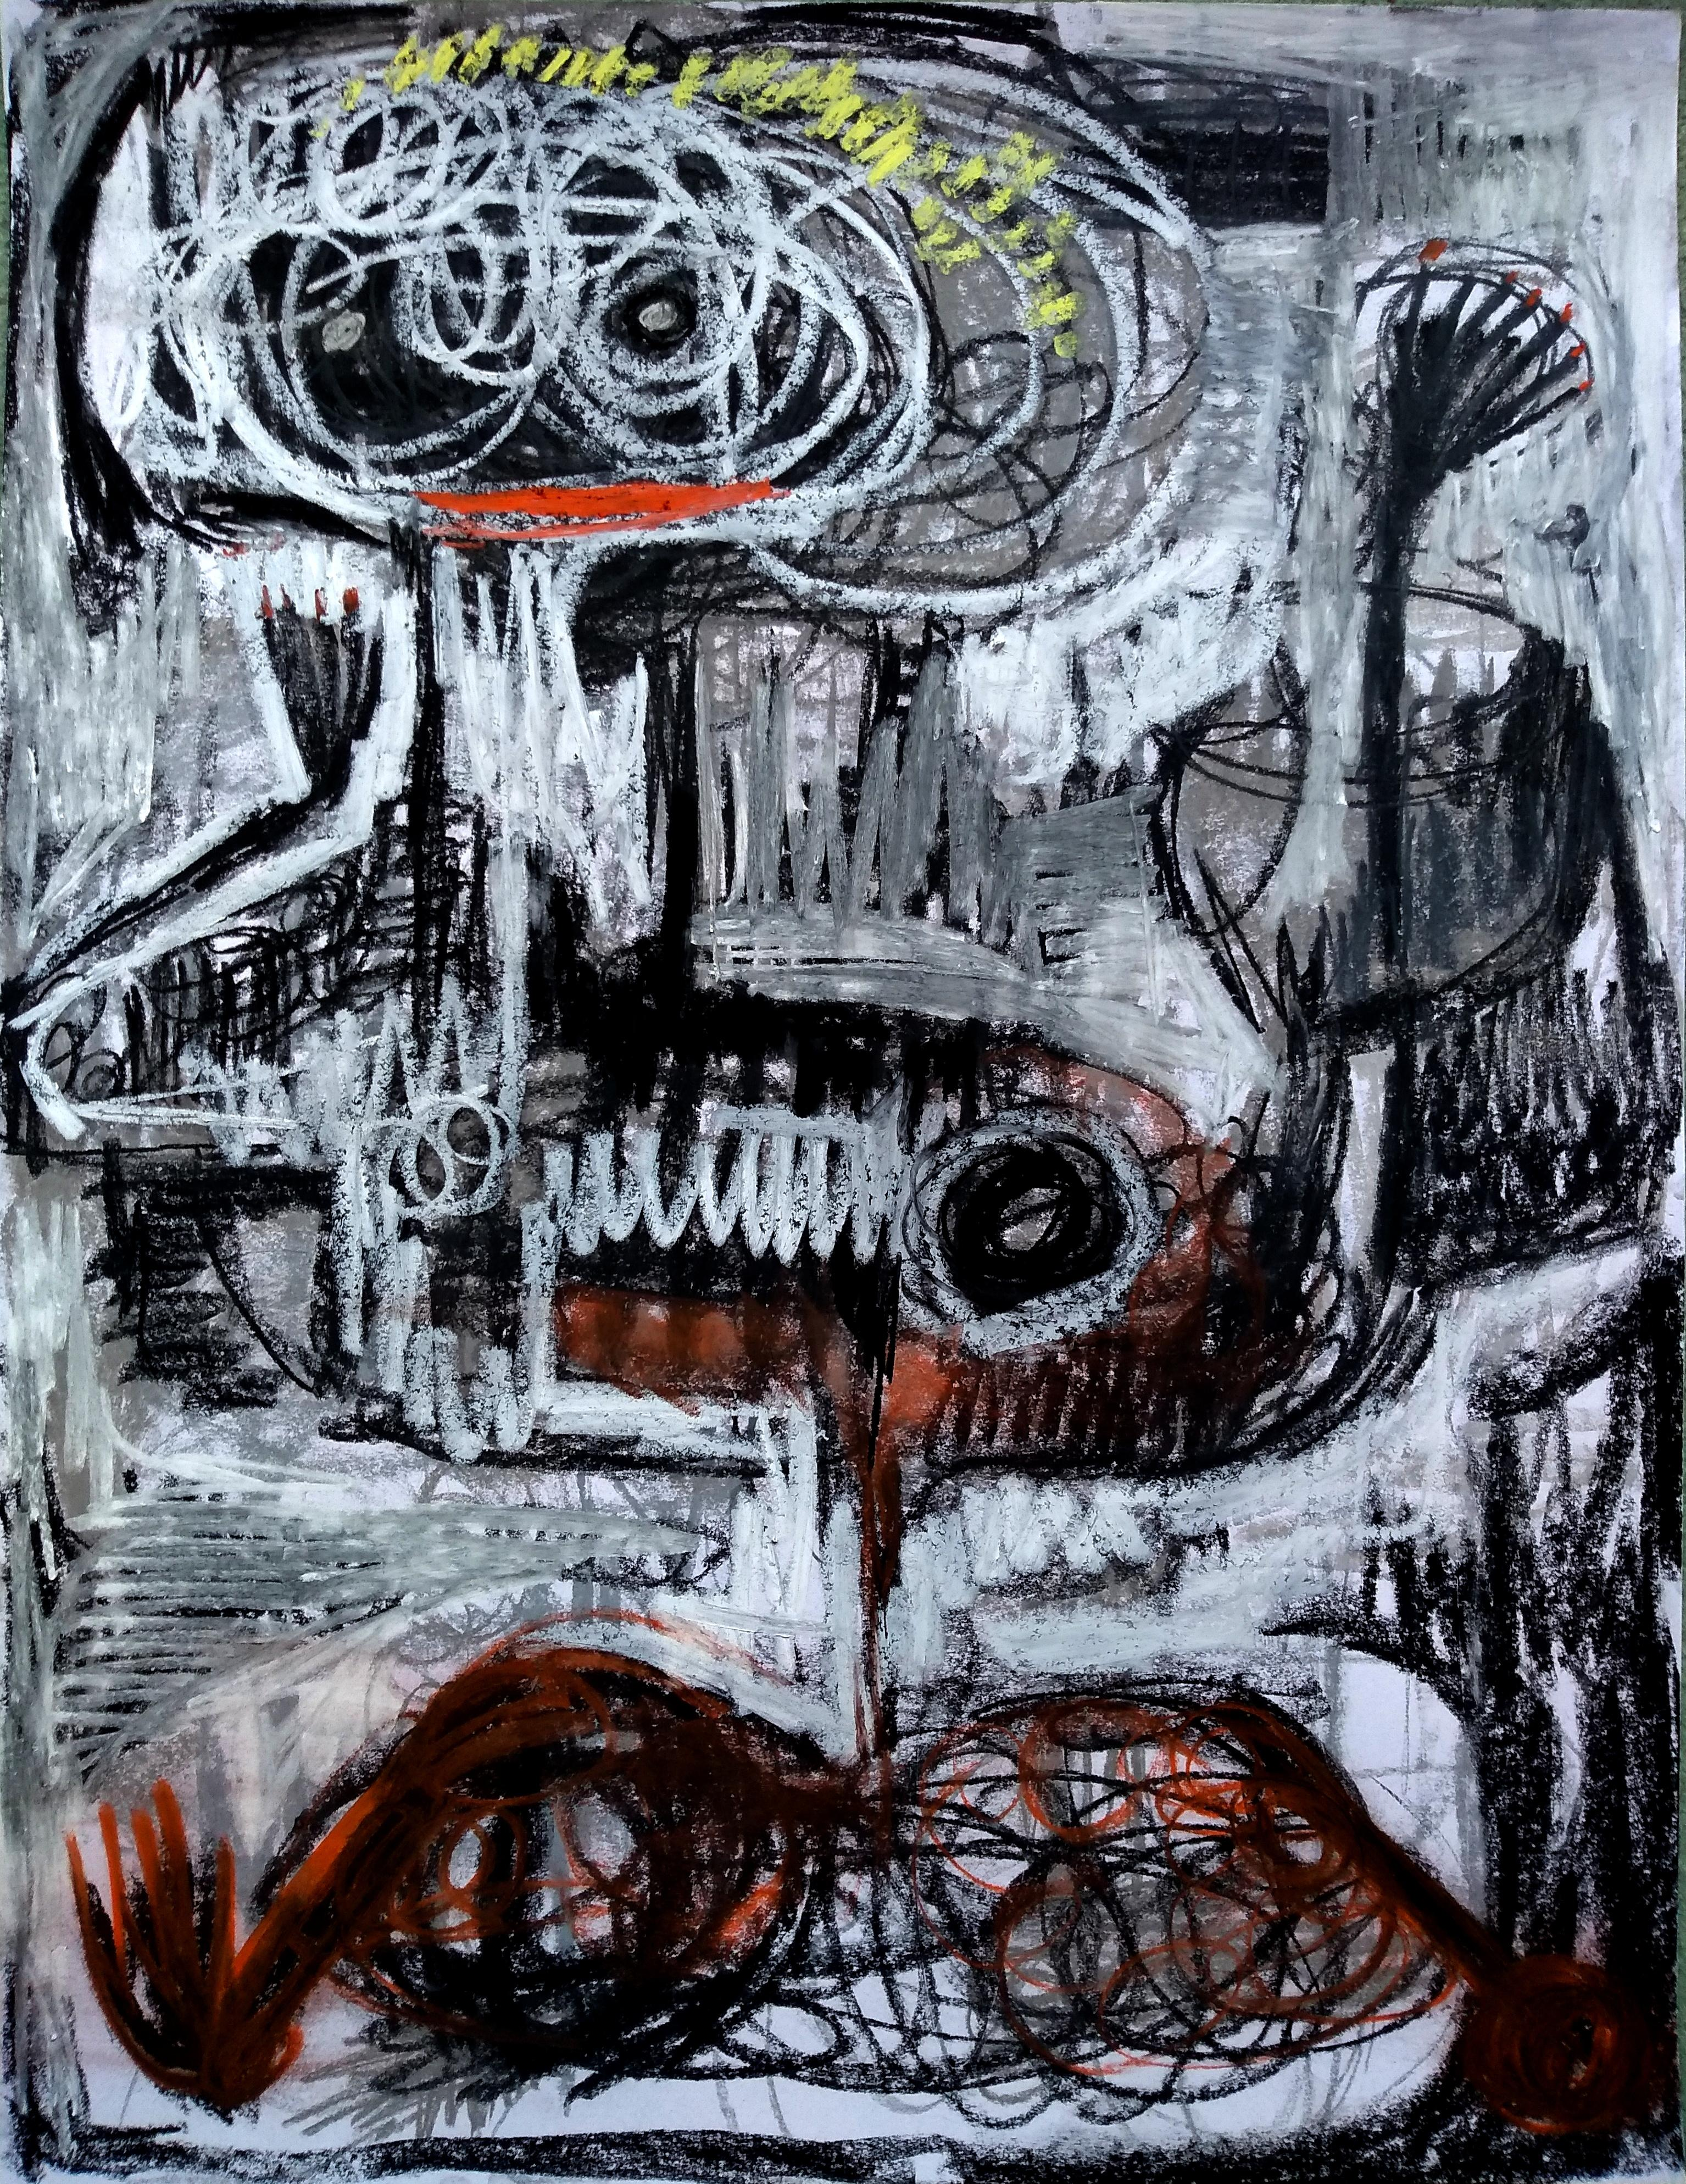 The owner III - Parmis Sayous 21st Century drawing, Iranian contemporary painter